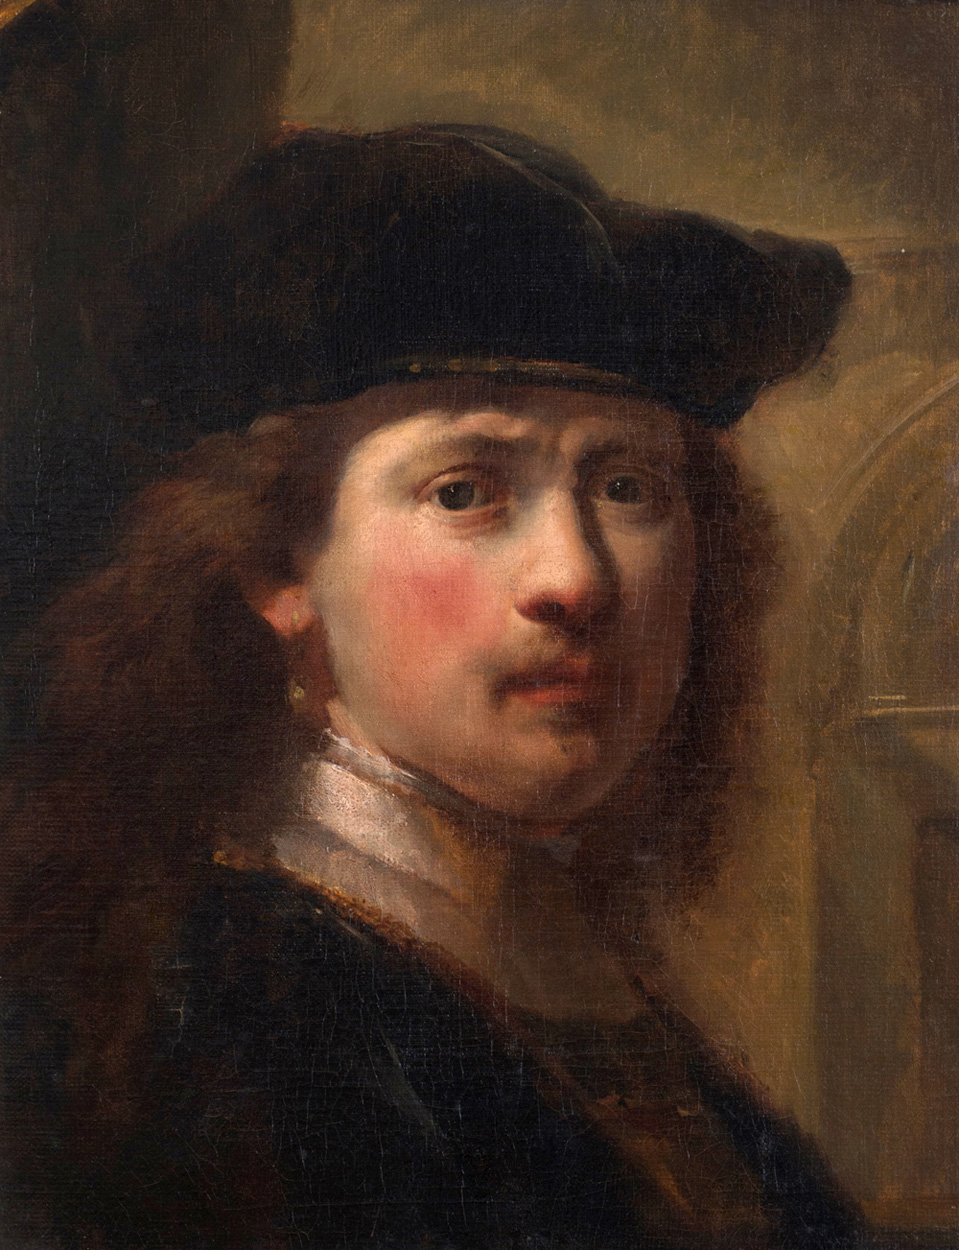 Govert_Flinck_-_Portrait_of_Rembrant_ок1640.jpg